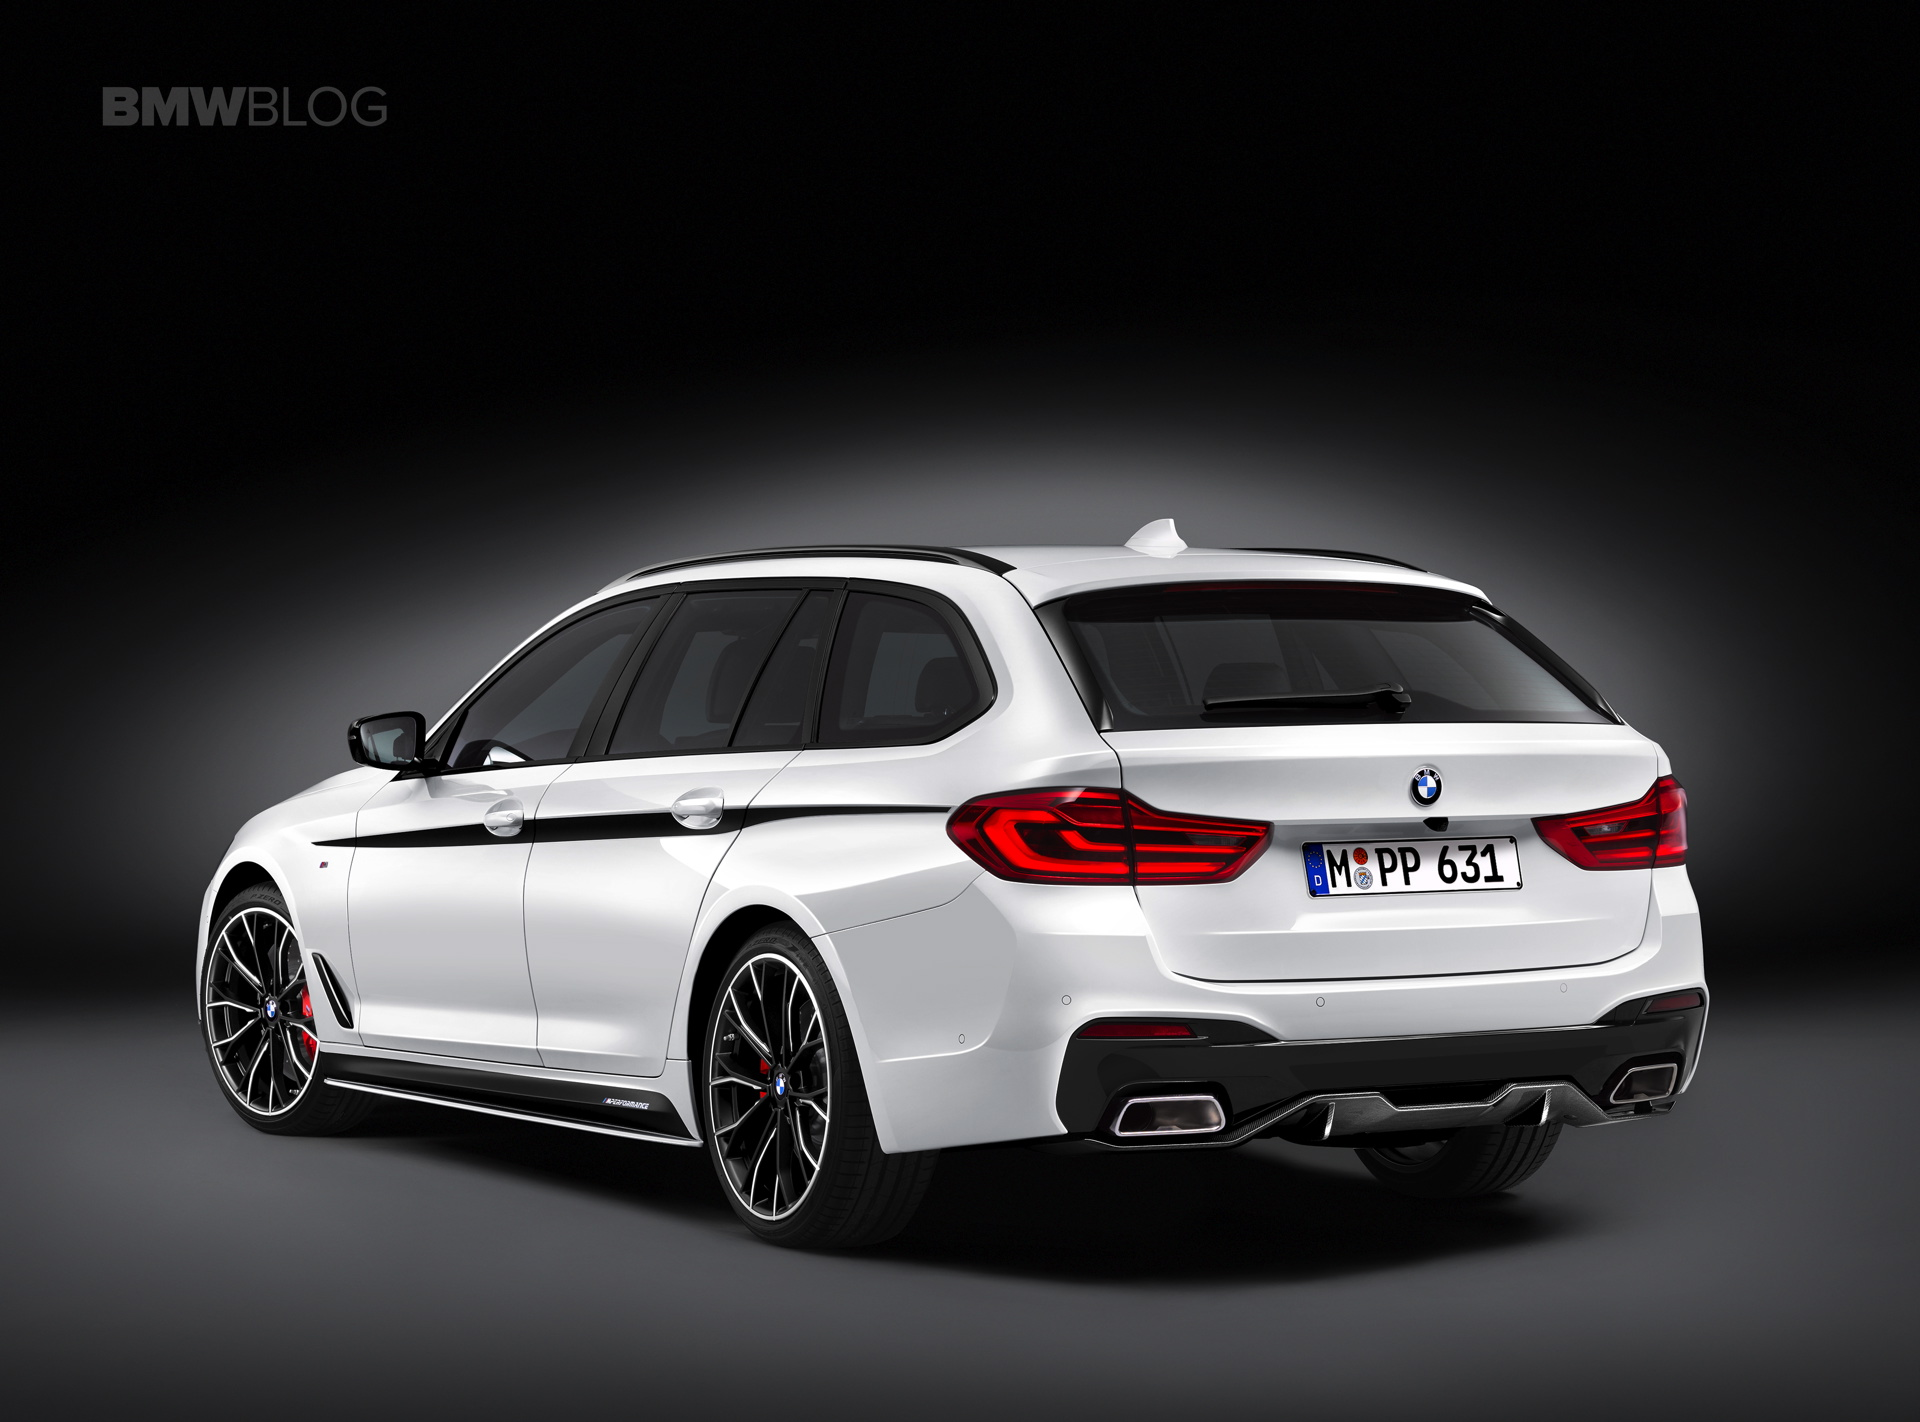 BMW M Performance Parts for the new BMW 5 Series Touring